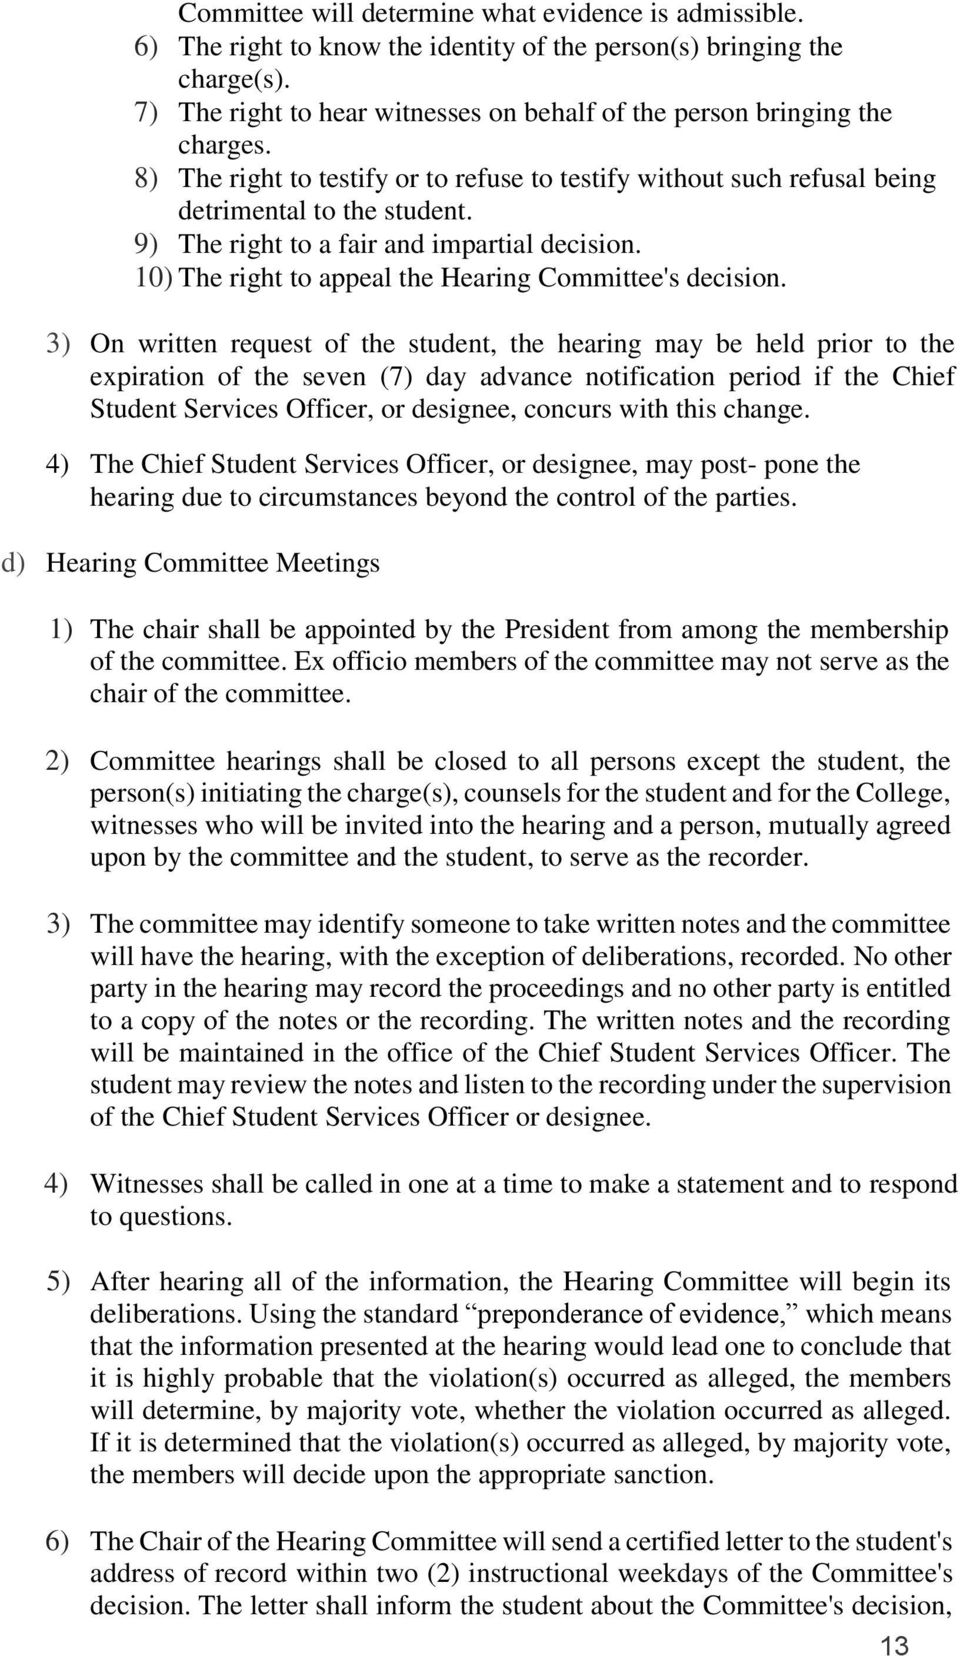 9) The right to a fair and impartial decision. 10) The right to appeal the Hearing Committee's decision.